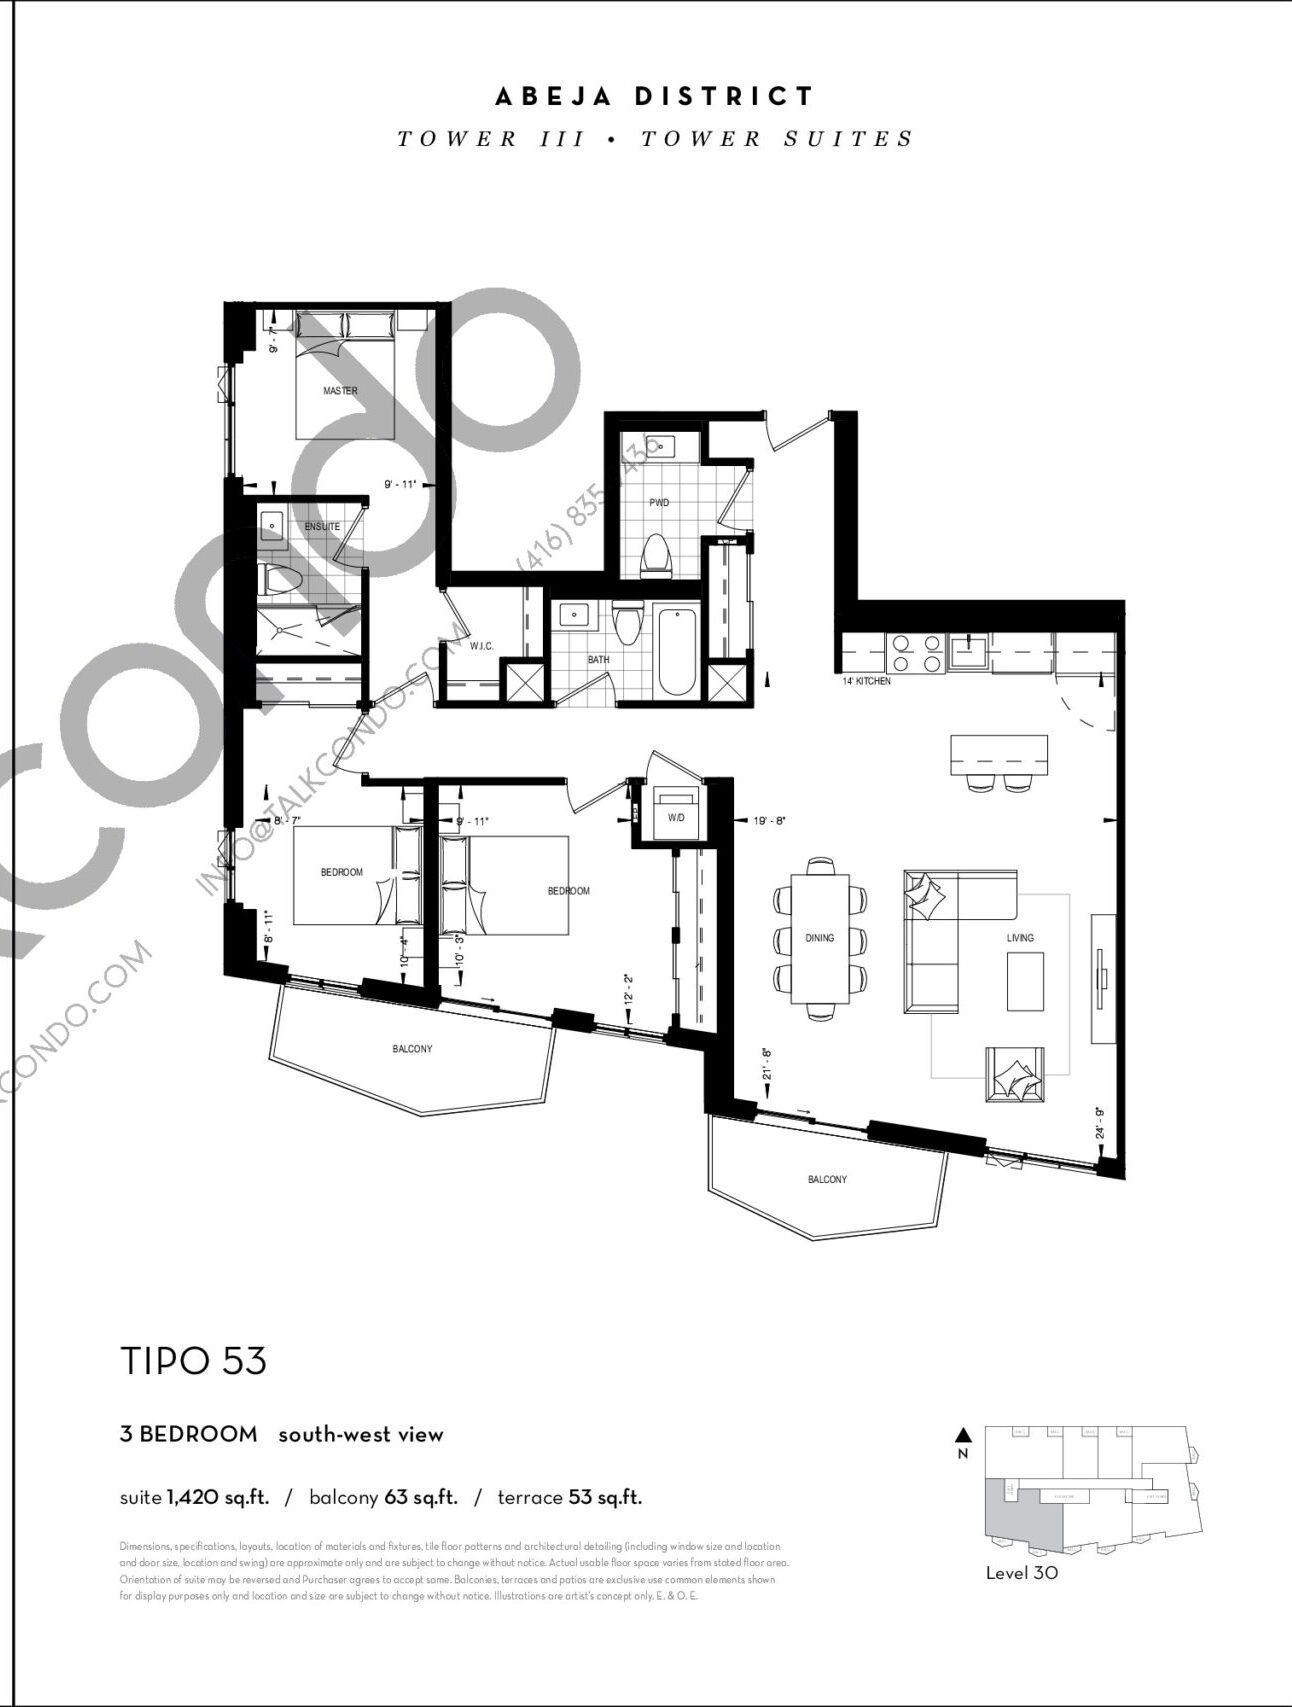 TIPO 53 Floor Plan at Abeja District Condos Tower 3 - 1420 sq.ft